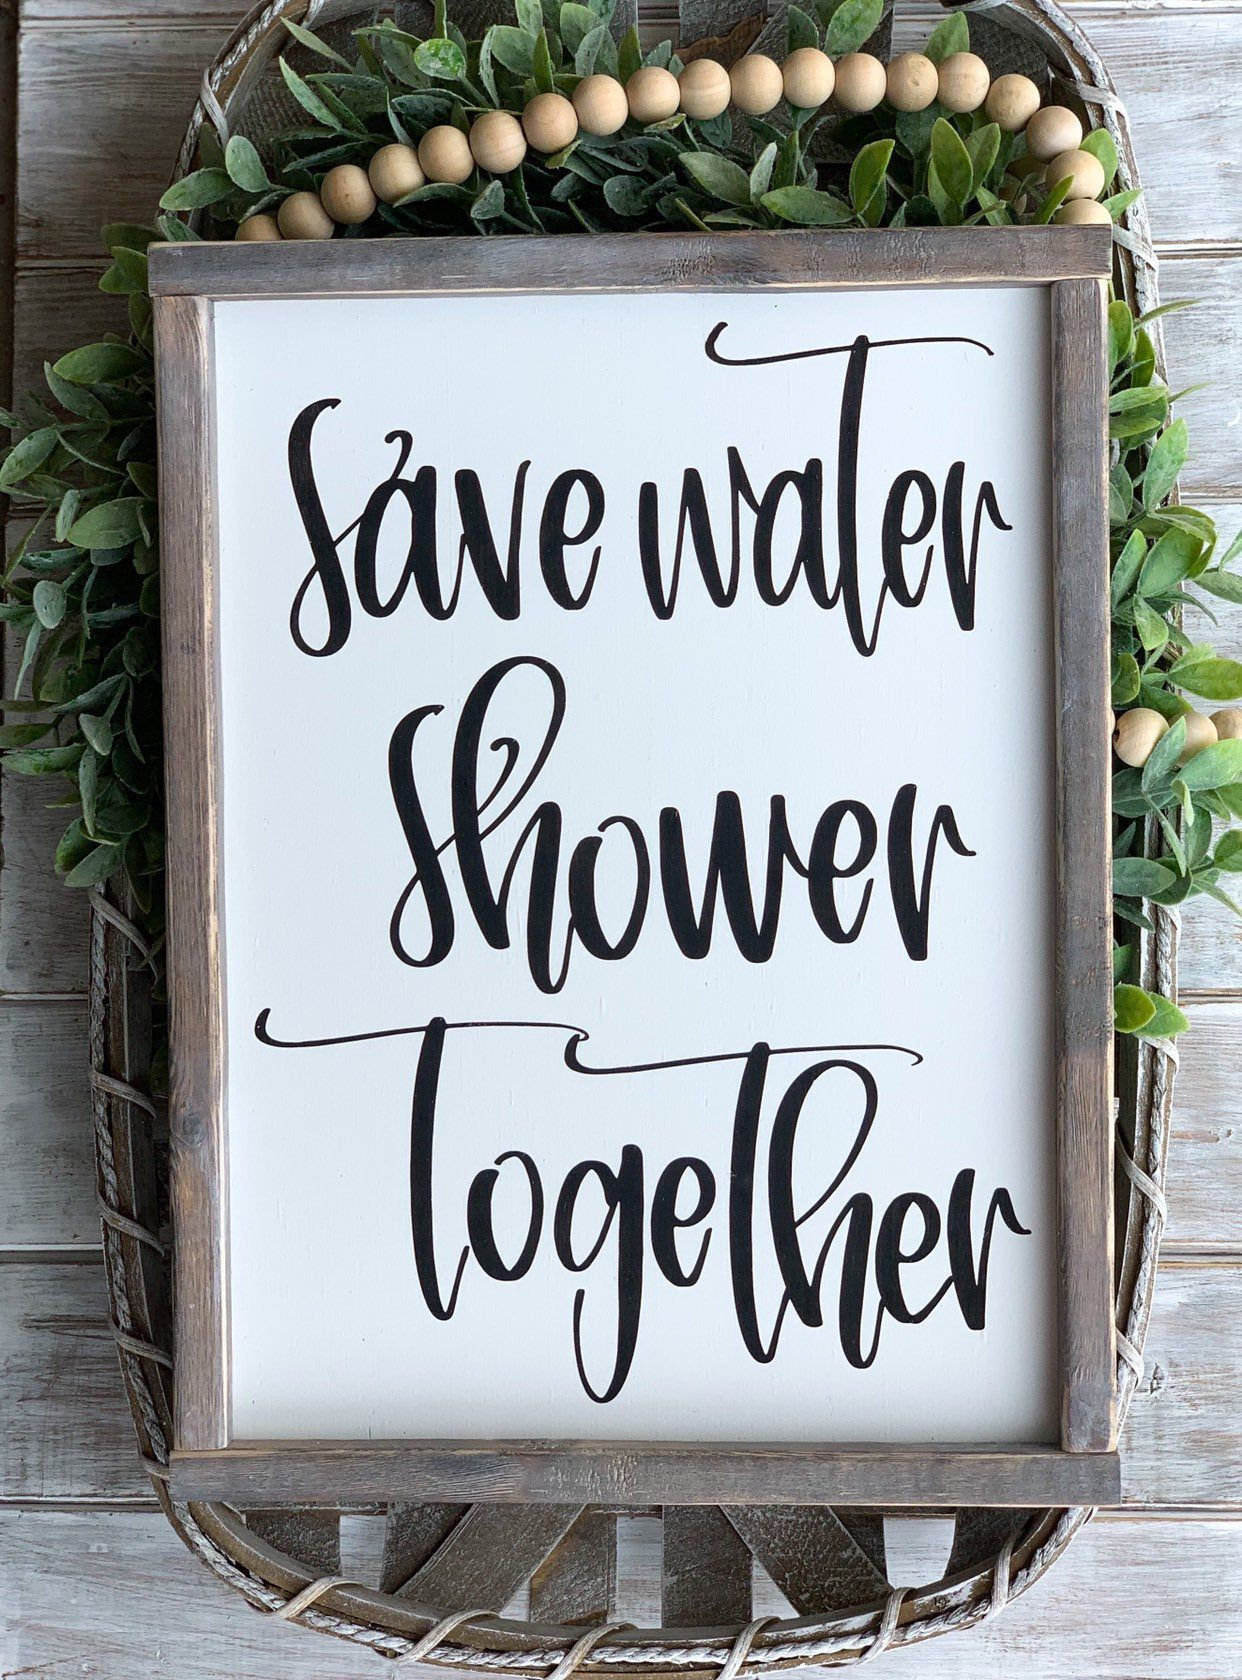 Photo of Farmhouse Decor | Farmhouse Wall Decor | Farmhouse Signs | Save Water Shower Together Sign | Funny Bathroom Signs | Home Decor